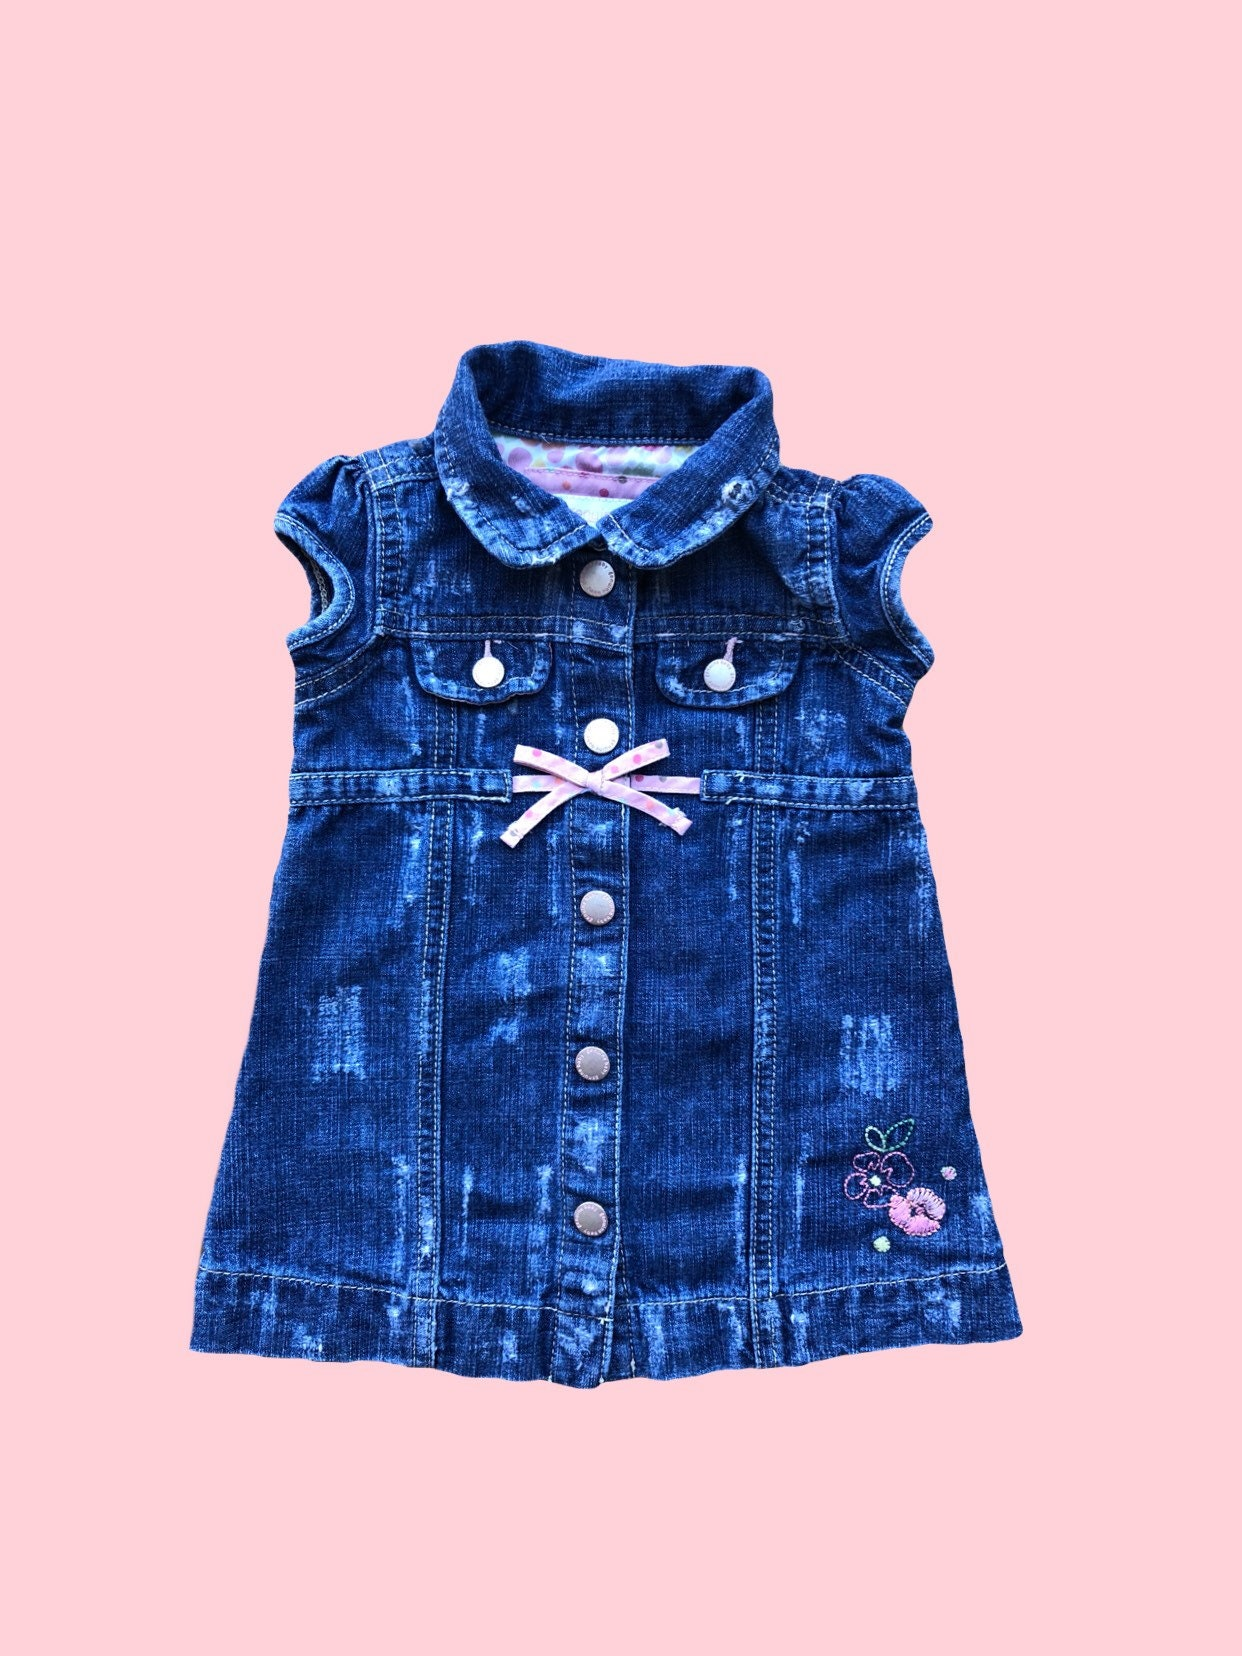 Baby girl dress Girl denim dress Baby debim dress Baby jean